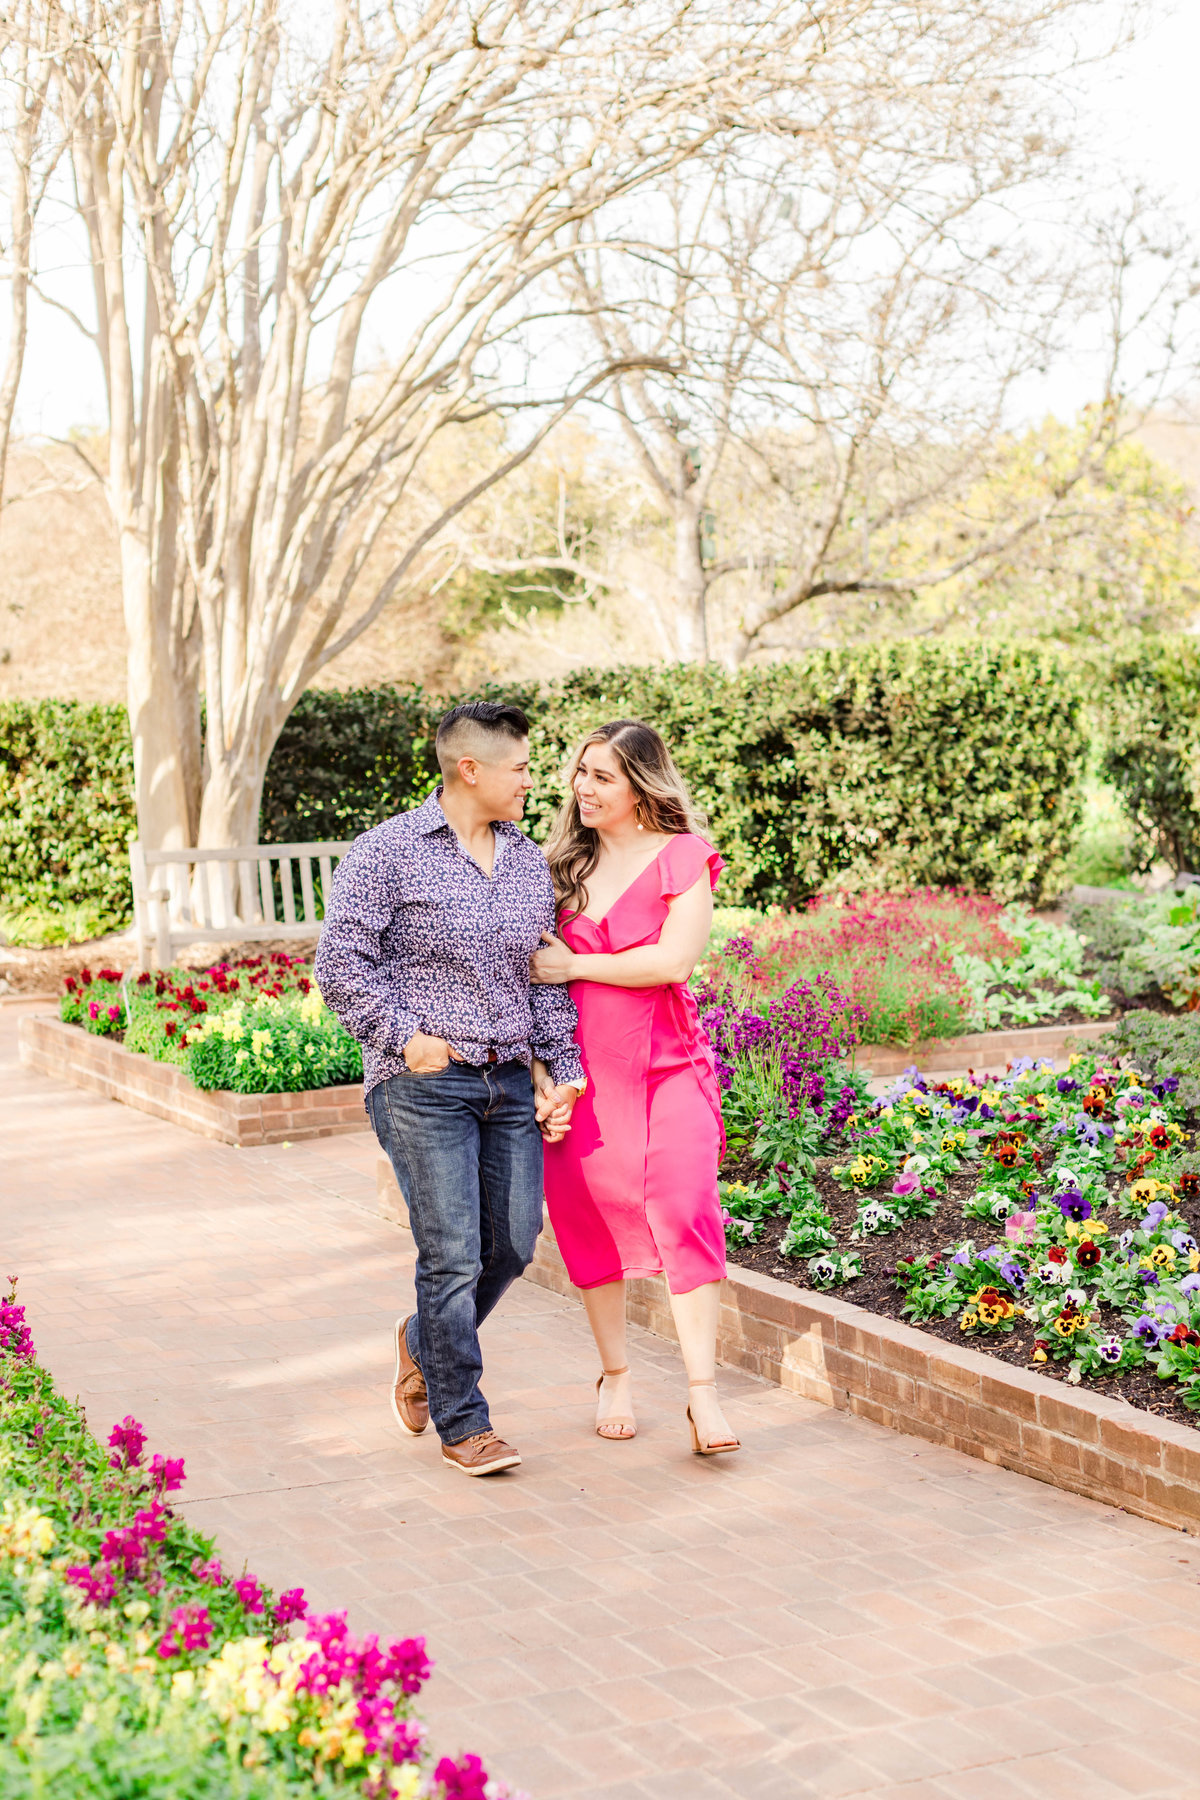 San Antonio Botanical Gardens_Alyssa + Cynthia Engagement Session-135